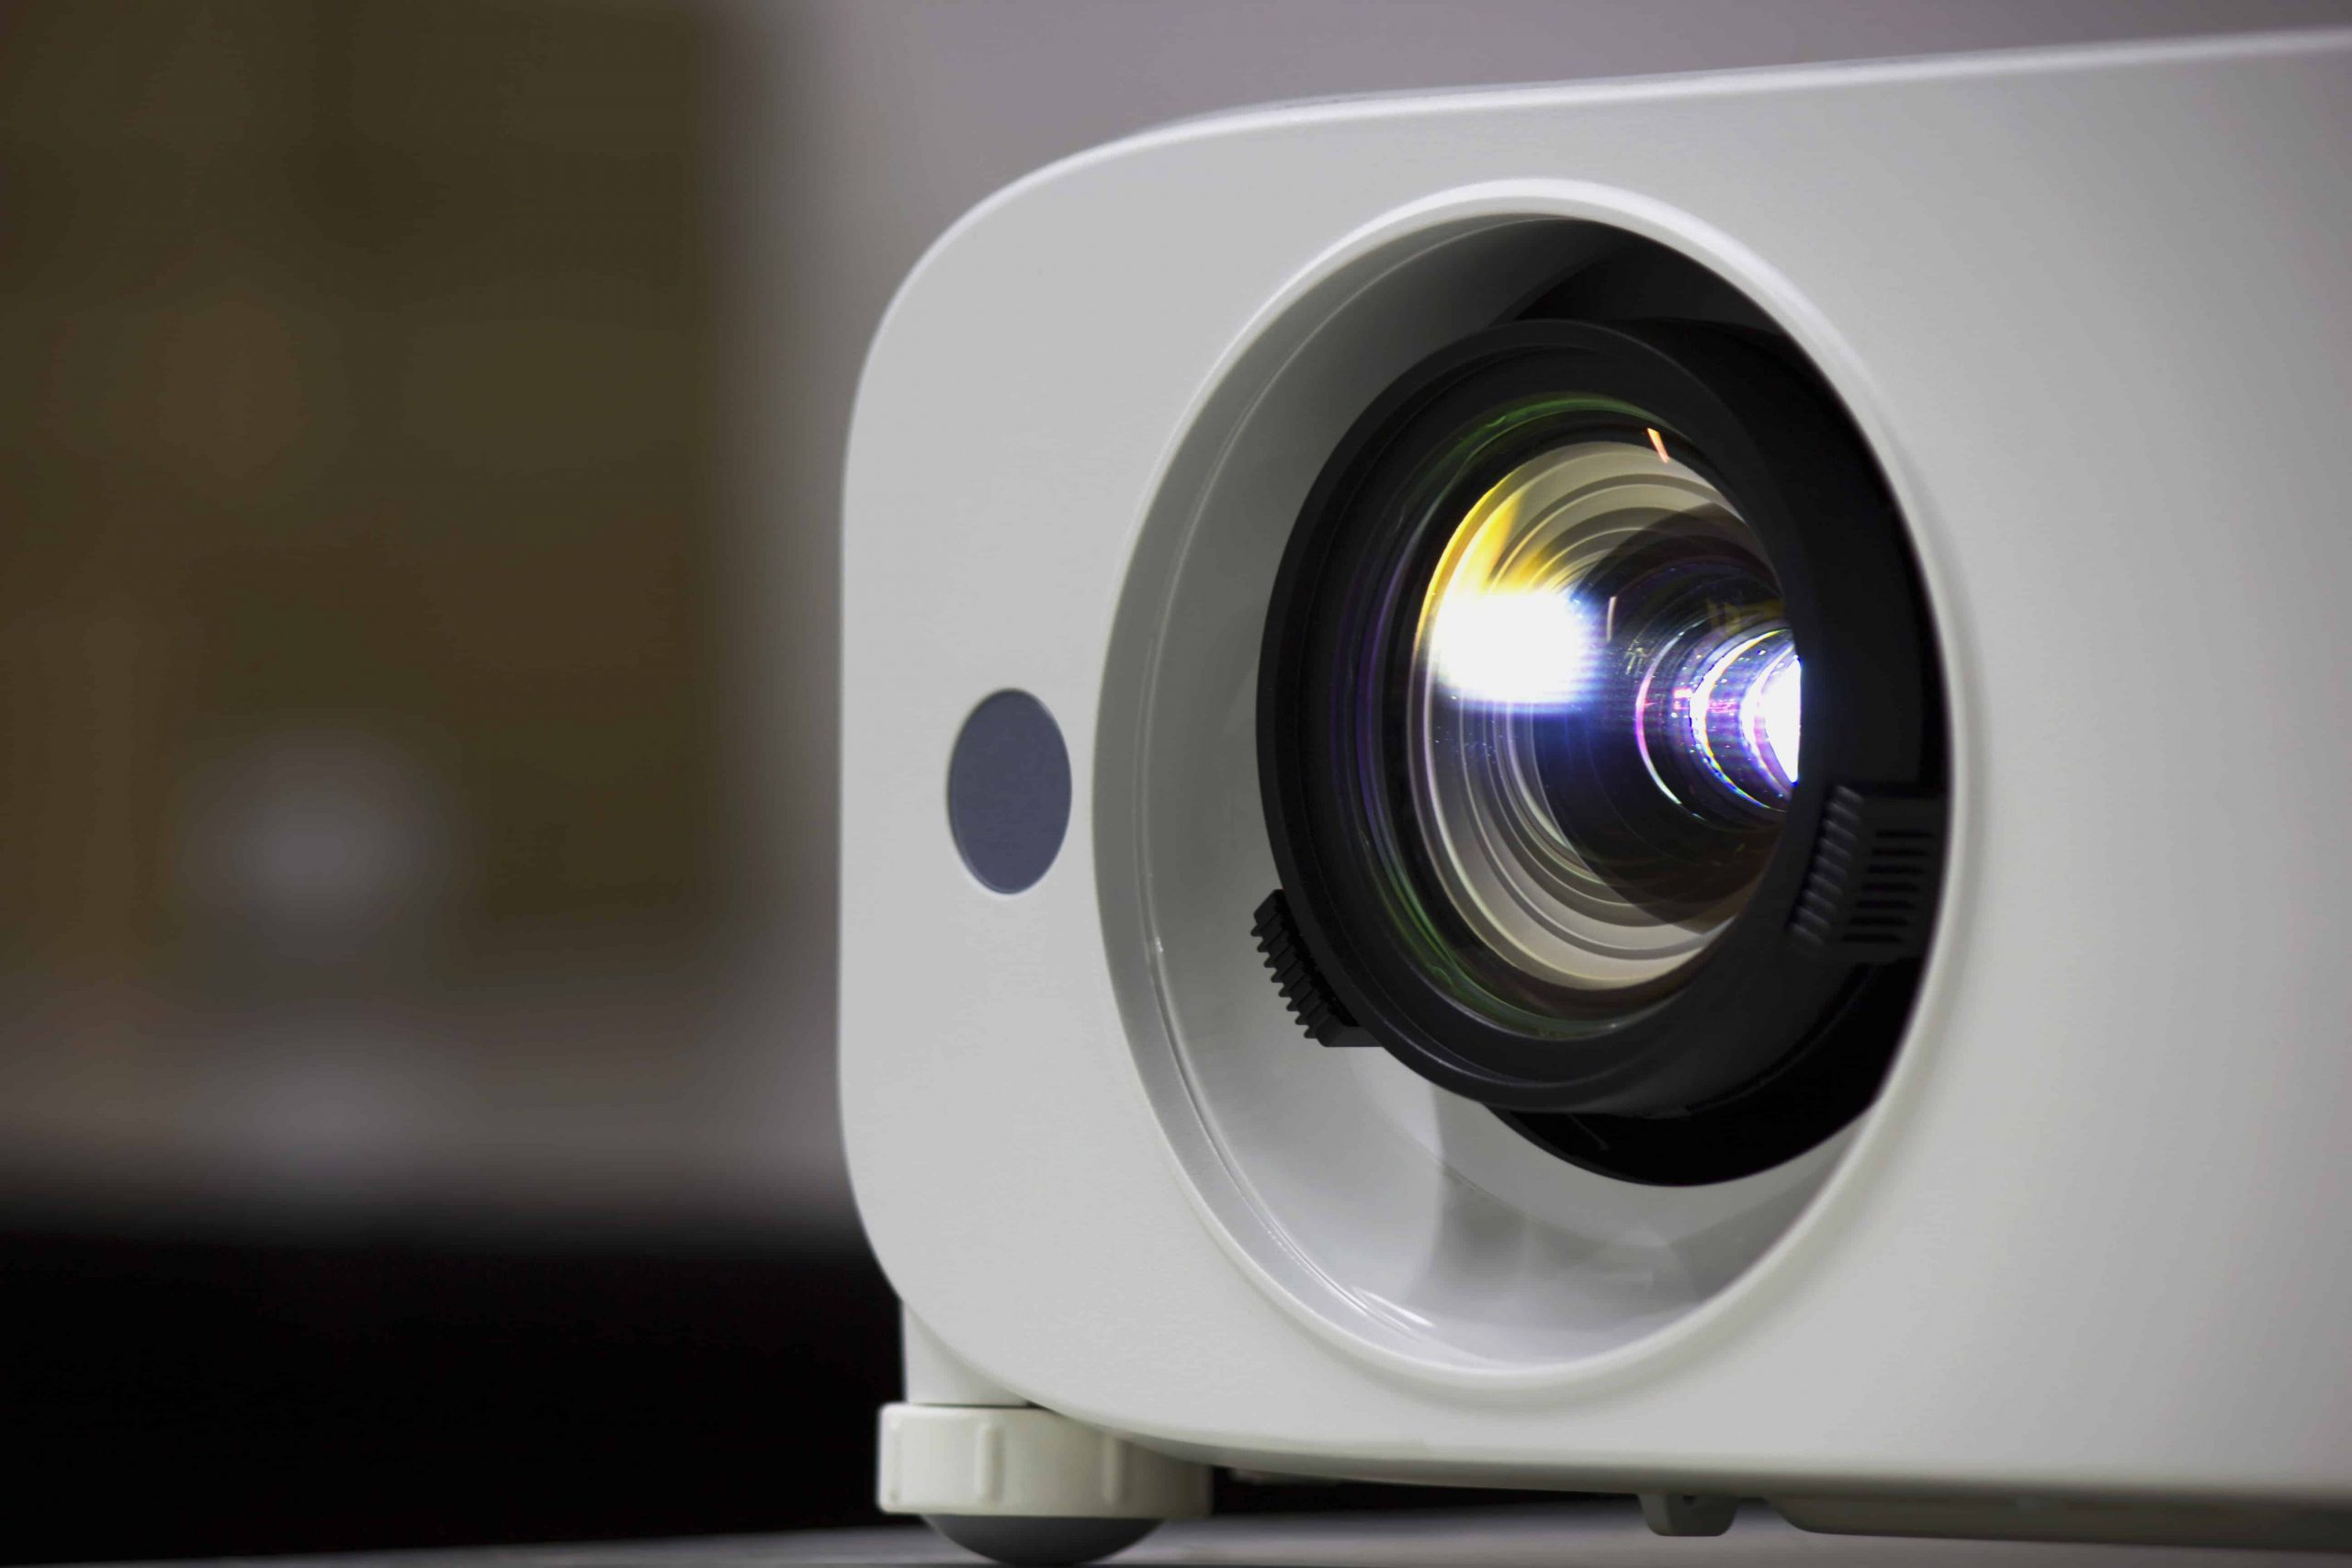 Best Projector 2020: Shopping Guide & Review